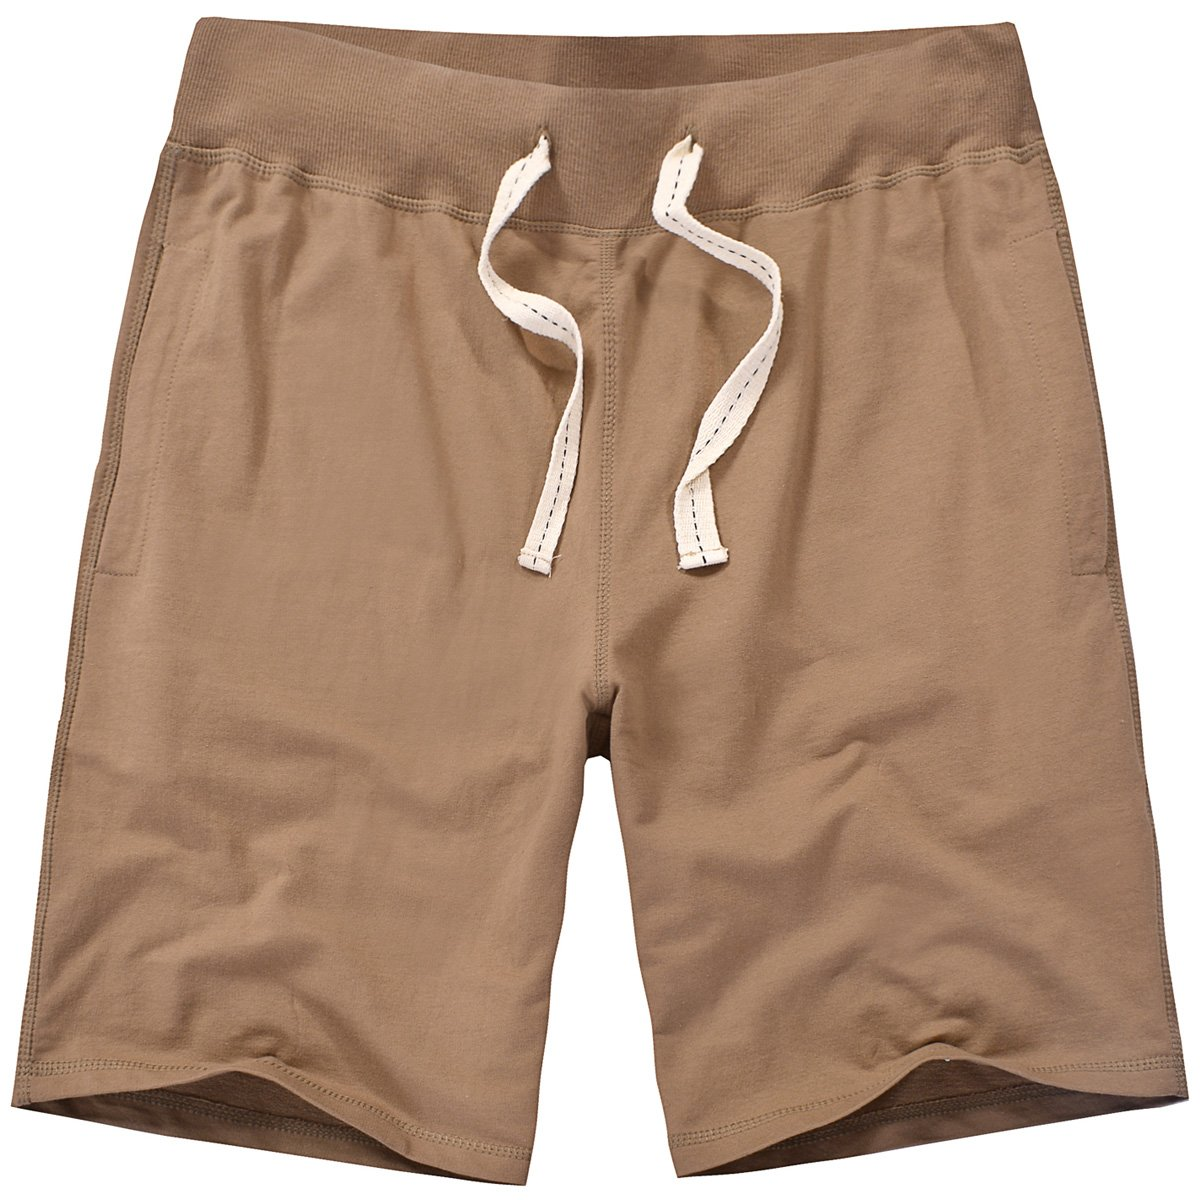 Amy Coulee Men's Cotton Casual Short with Pockets (S, Brown)